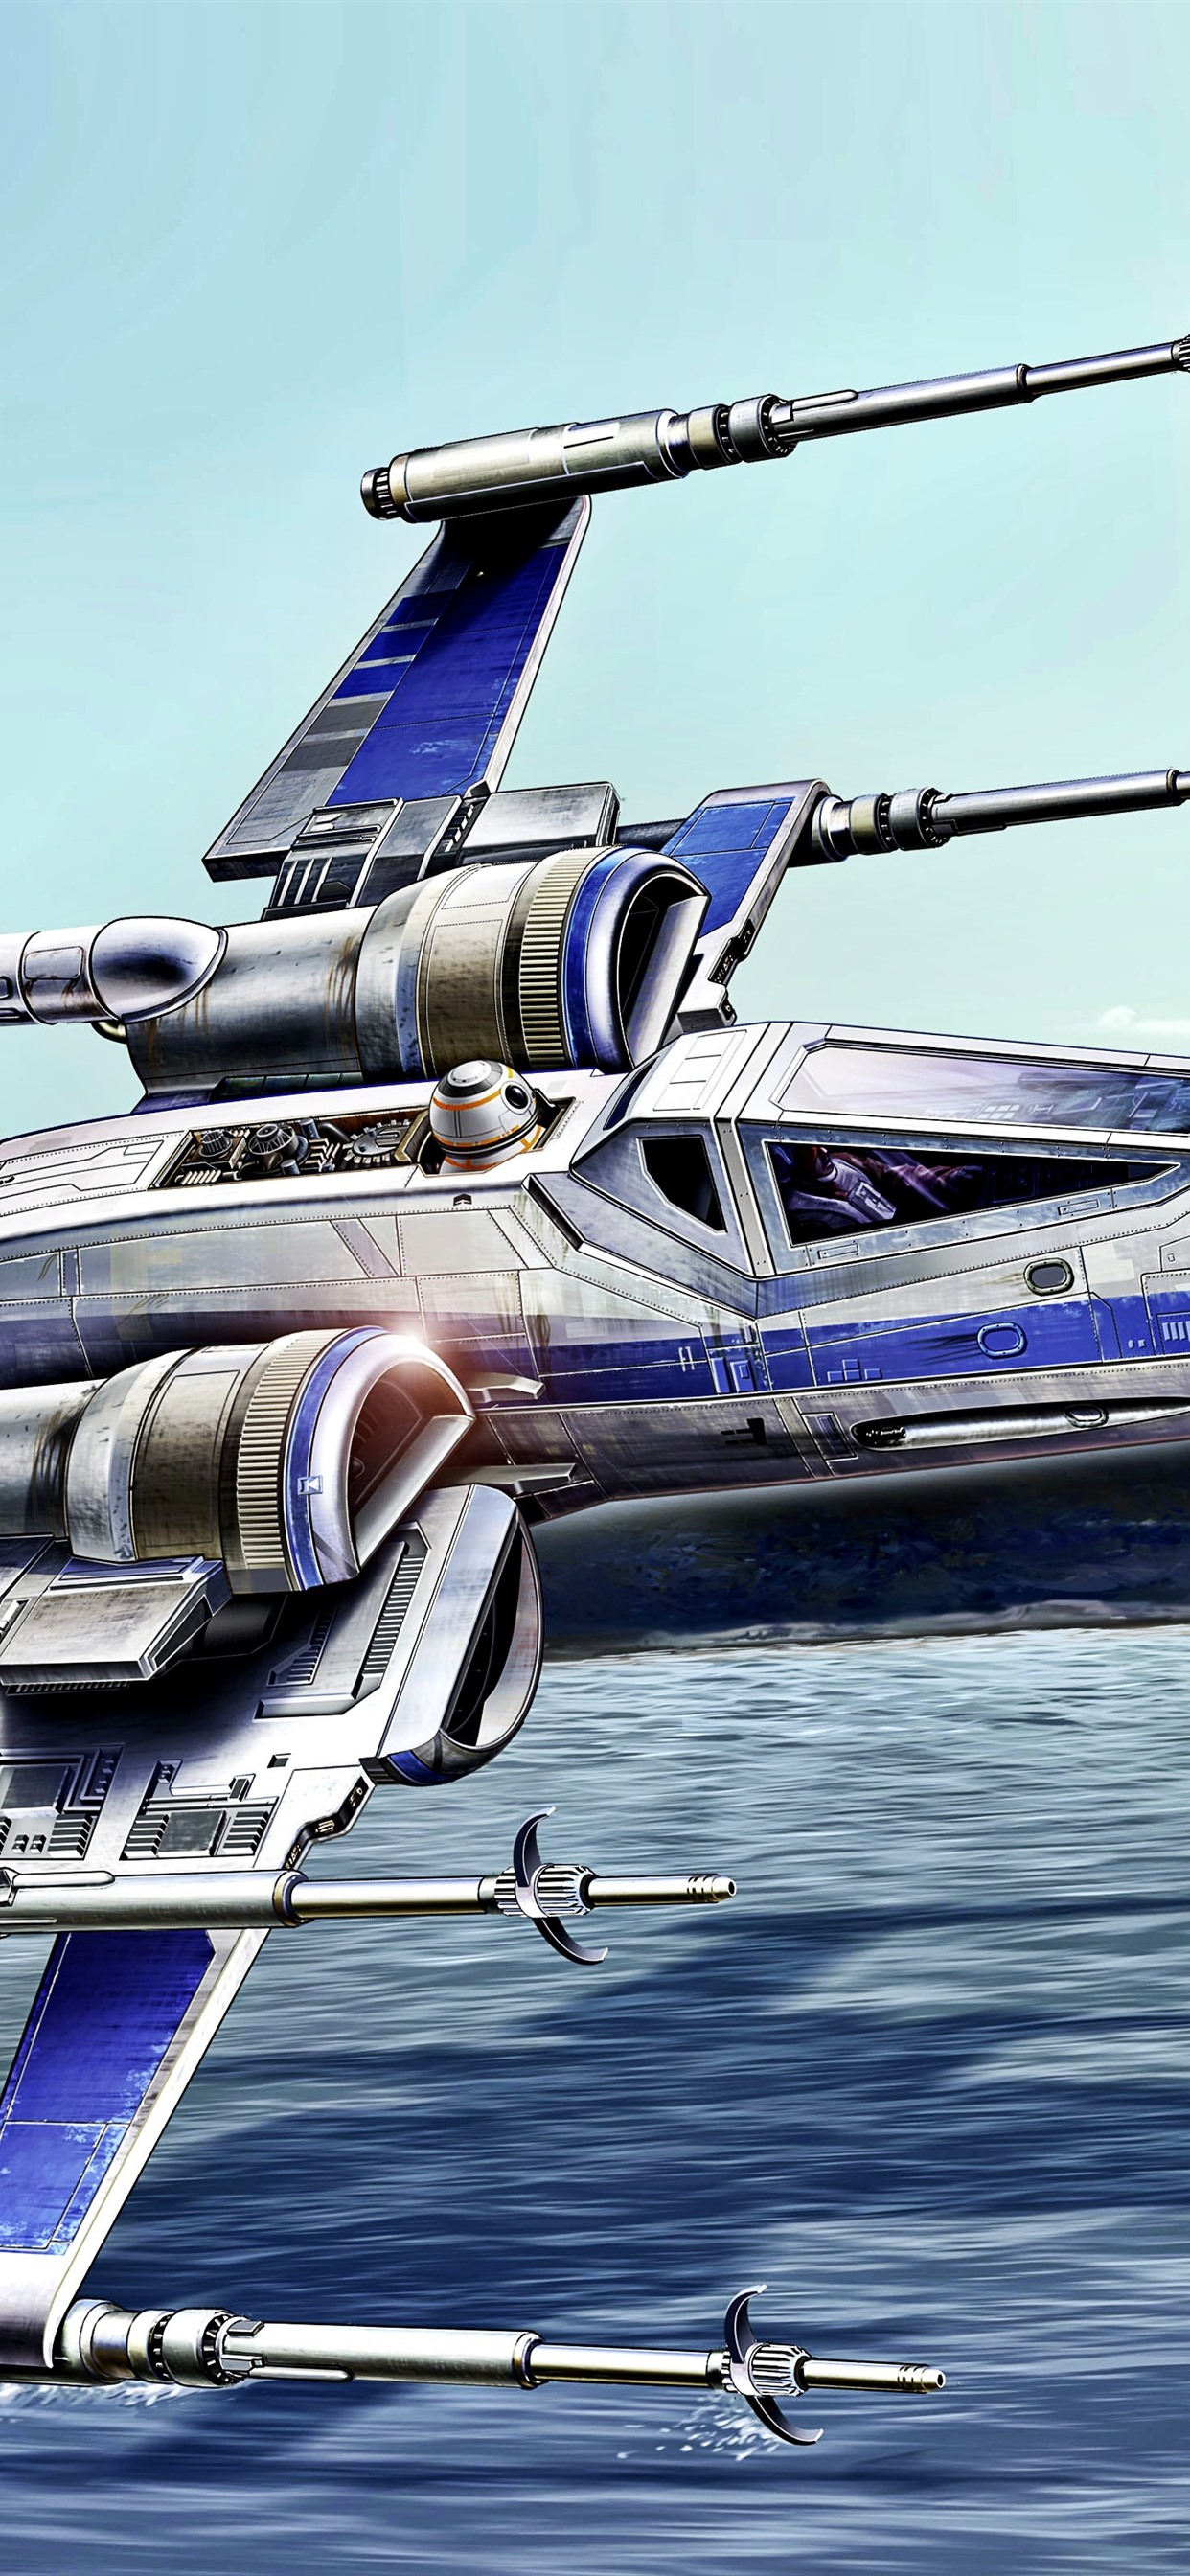 Star Wars Aircraft Art Picture 1242x2688 Iphone Xs Max